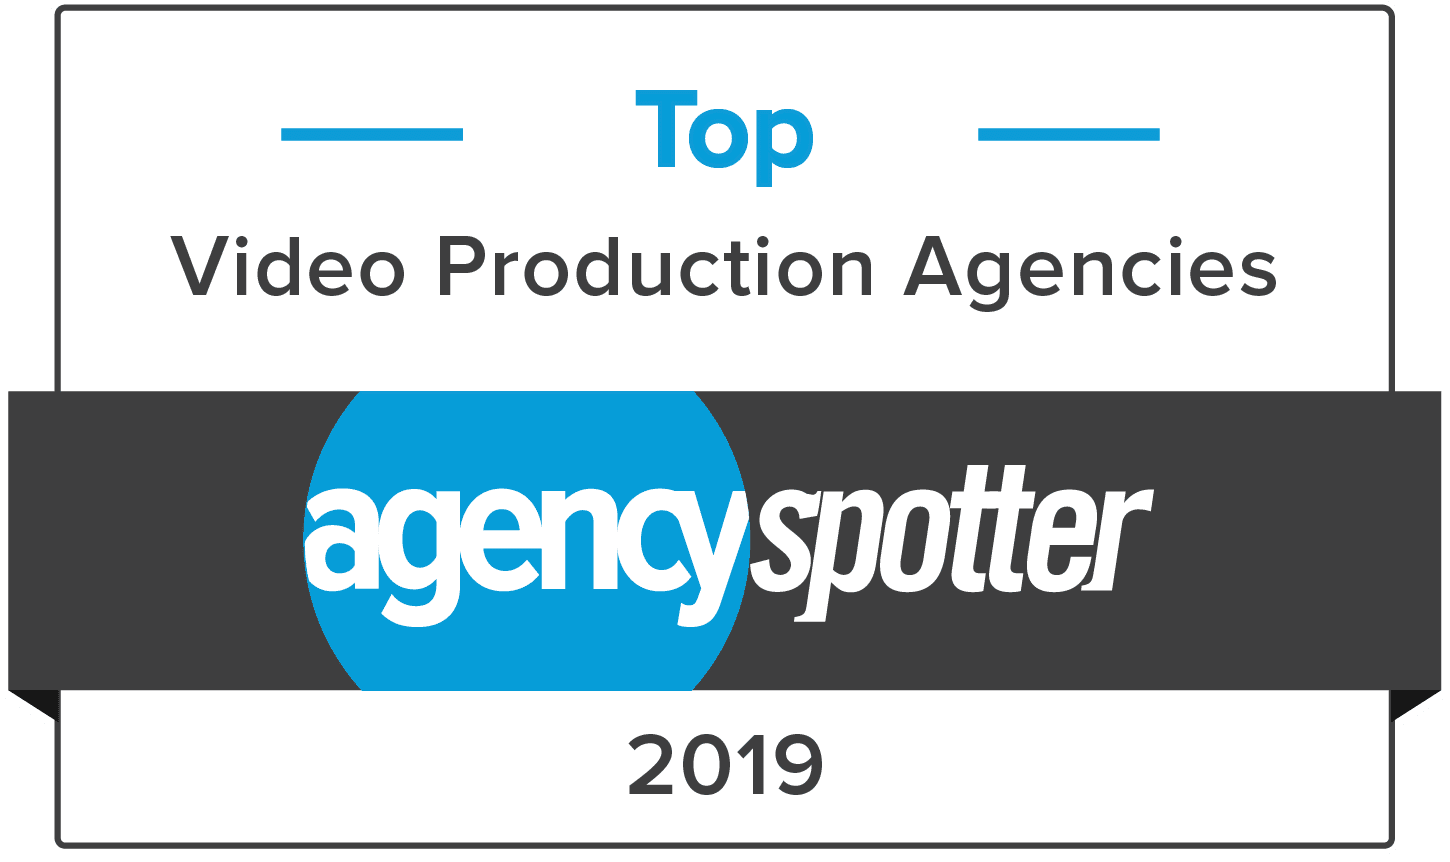 Video production agencies 2019 235fbb46bd09dafb86e5569b263f441d9bae4ef00ced8d6c8de44e8df01ffd30